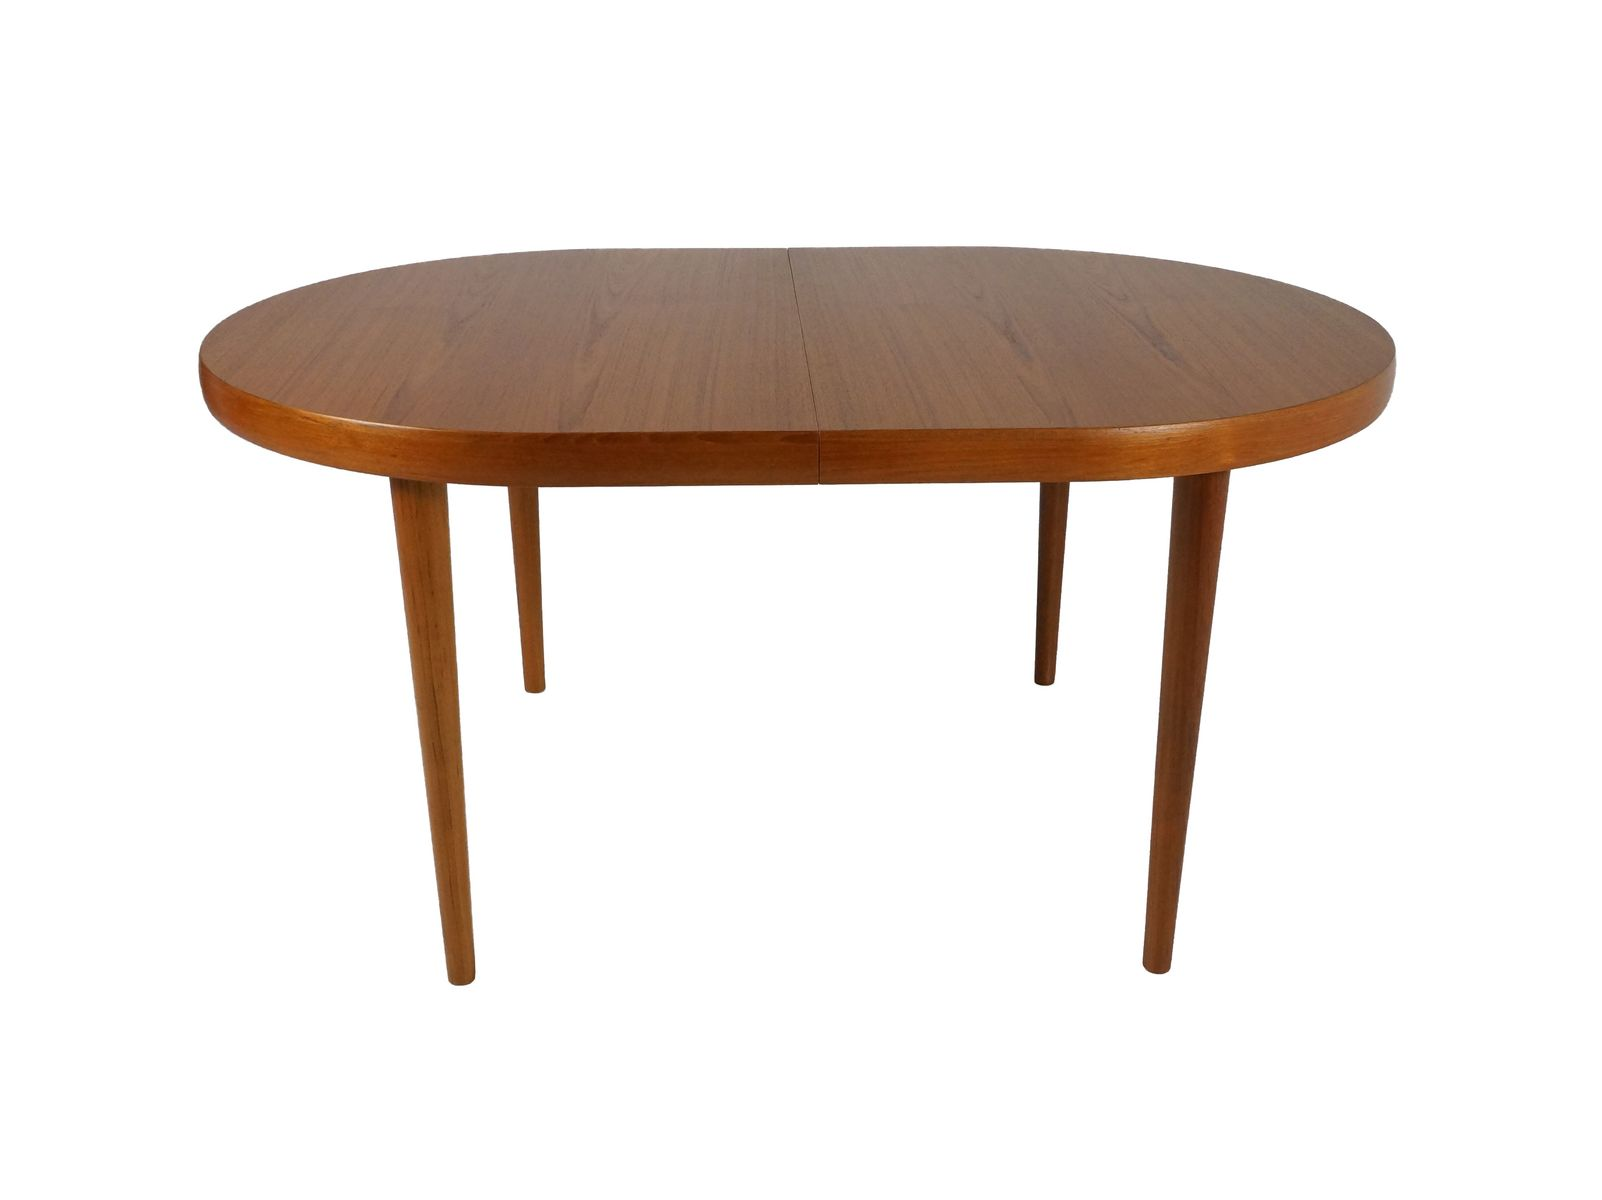 Table de salle manger vintage extensible ovale en teck for Salle a manger table ovale